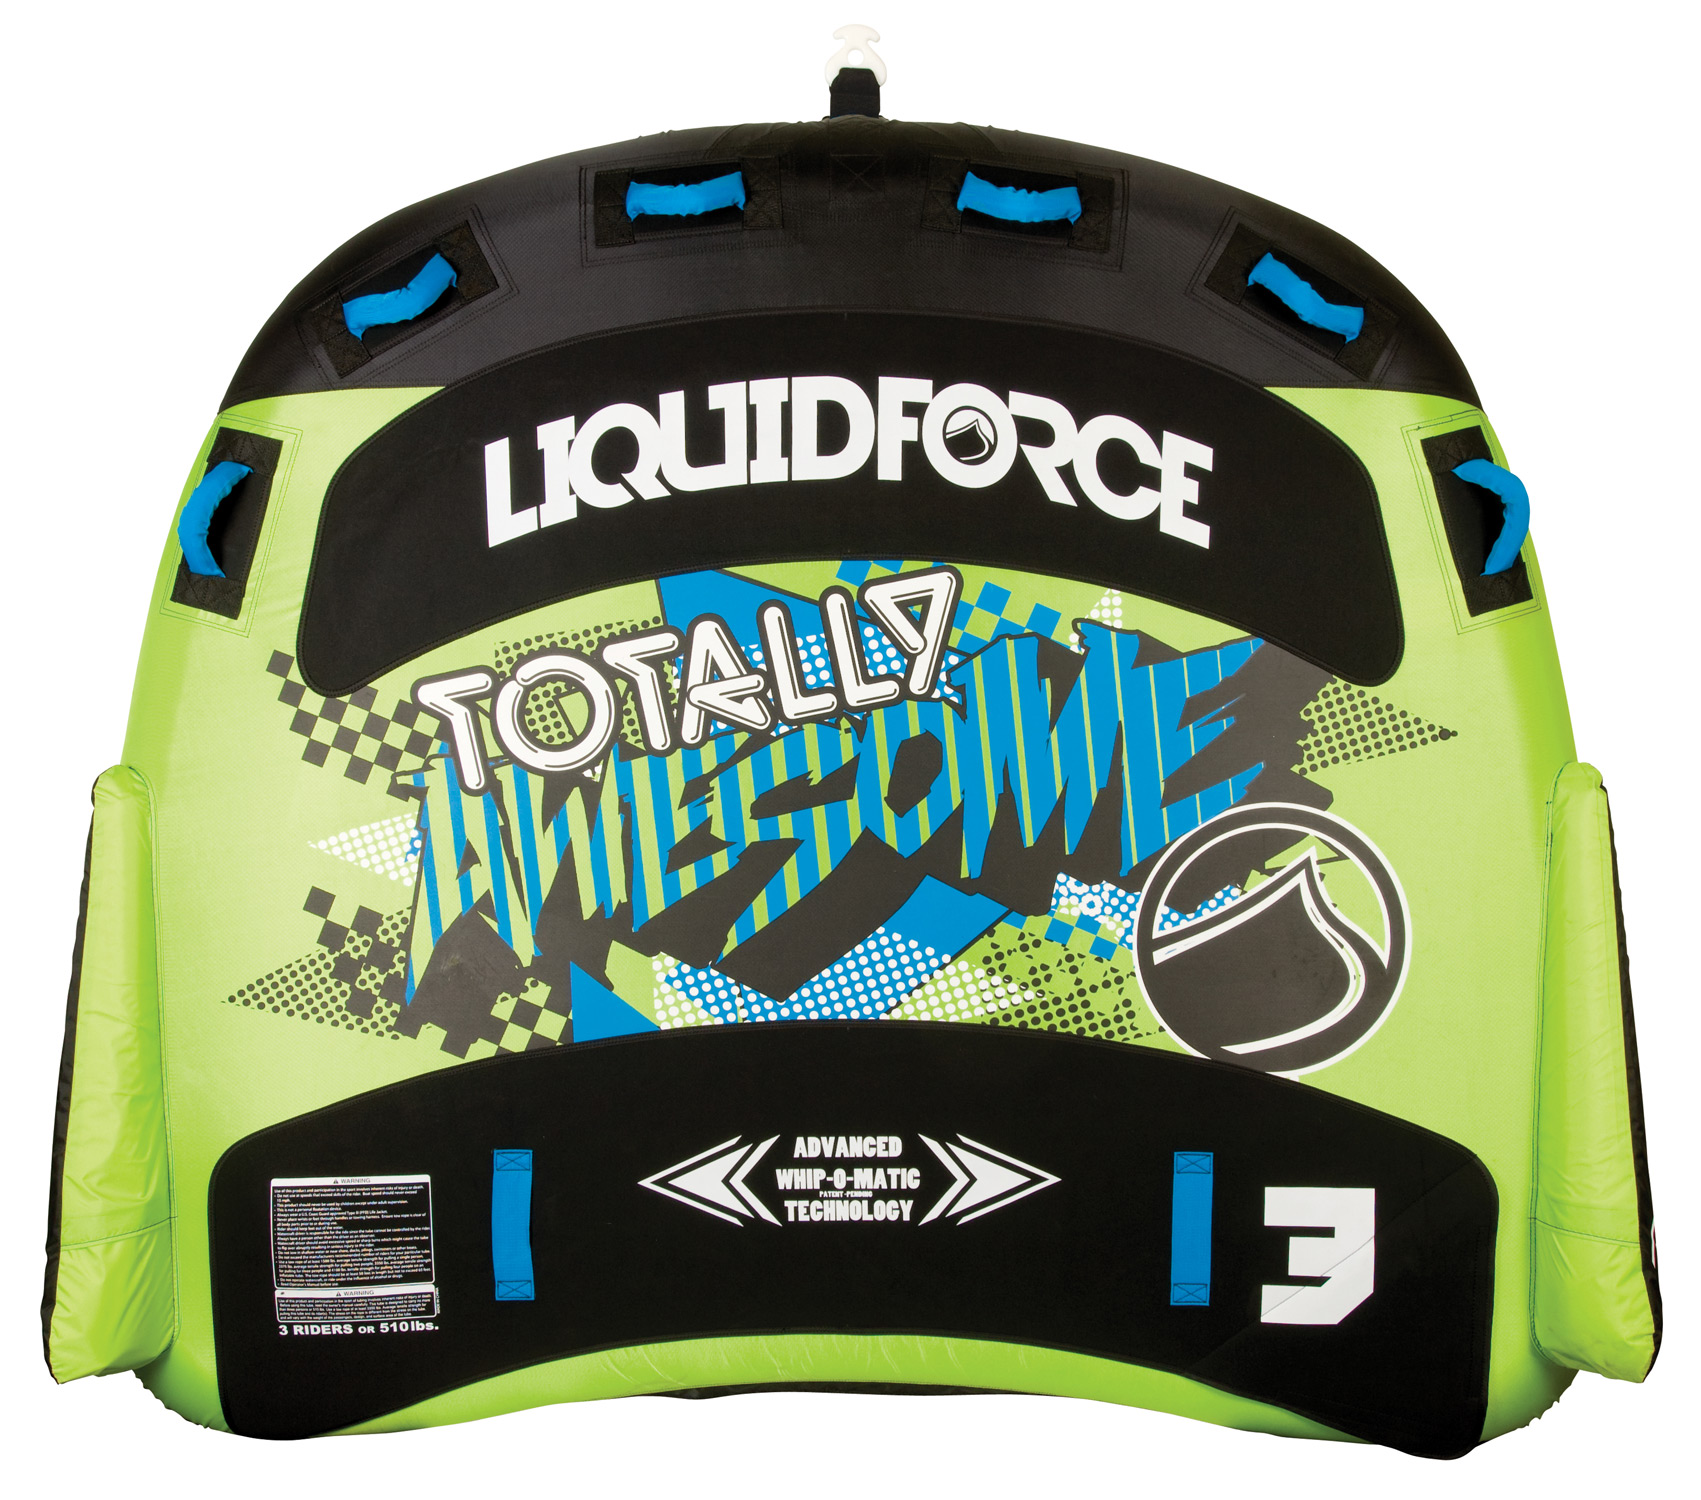 "Your 3 person Rocket with Whip-O-Matic Technology.Key Features of the Liquid Force Totally Awesome 3 Tube: 76"" x 88"" / 3 person design 6 Neoprene padded handle with knuckle guards Durable 420D / 840D Nylon Cover 28 gauge air bladder Quick connect tow attachment - $309.99"